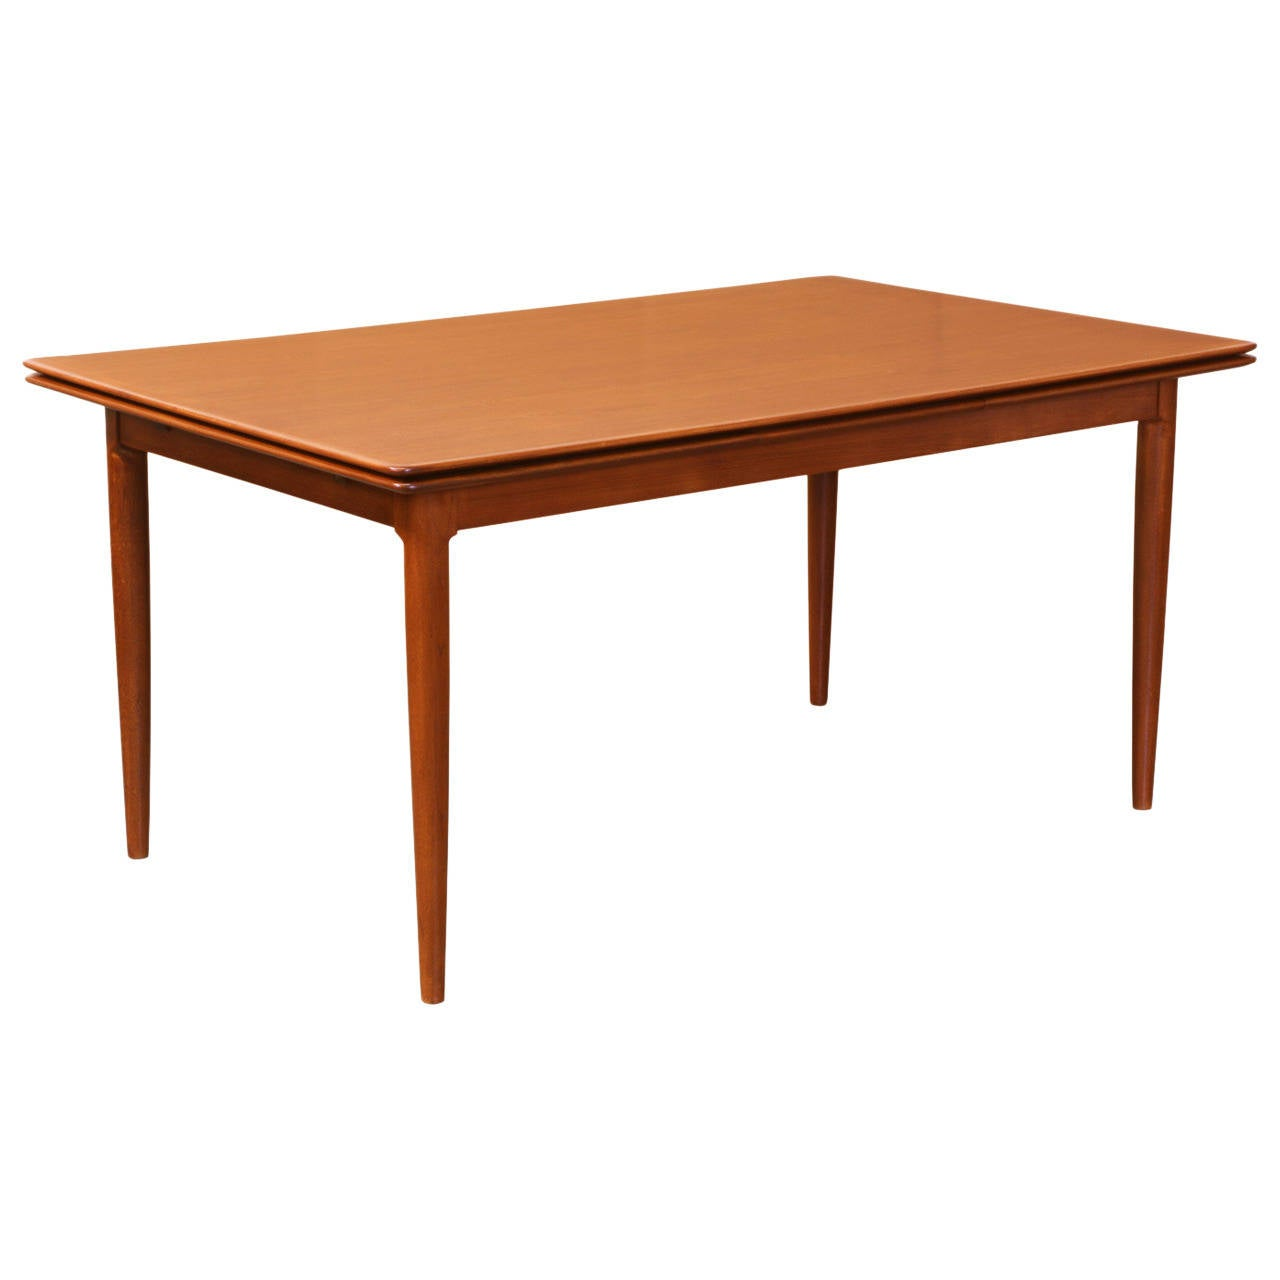 Danish Modern Teak Draw Leaf Dining Table For Sale At 1stdibs